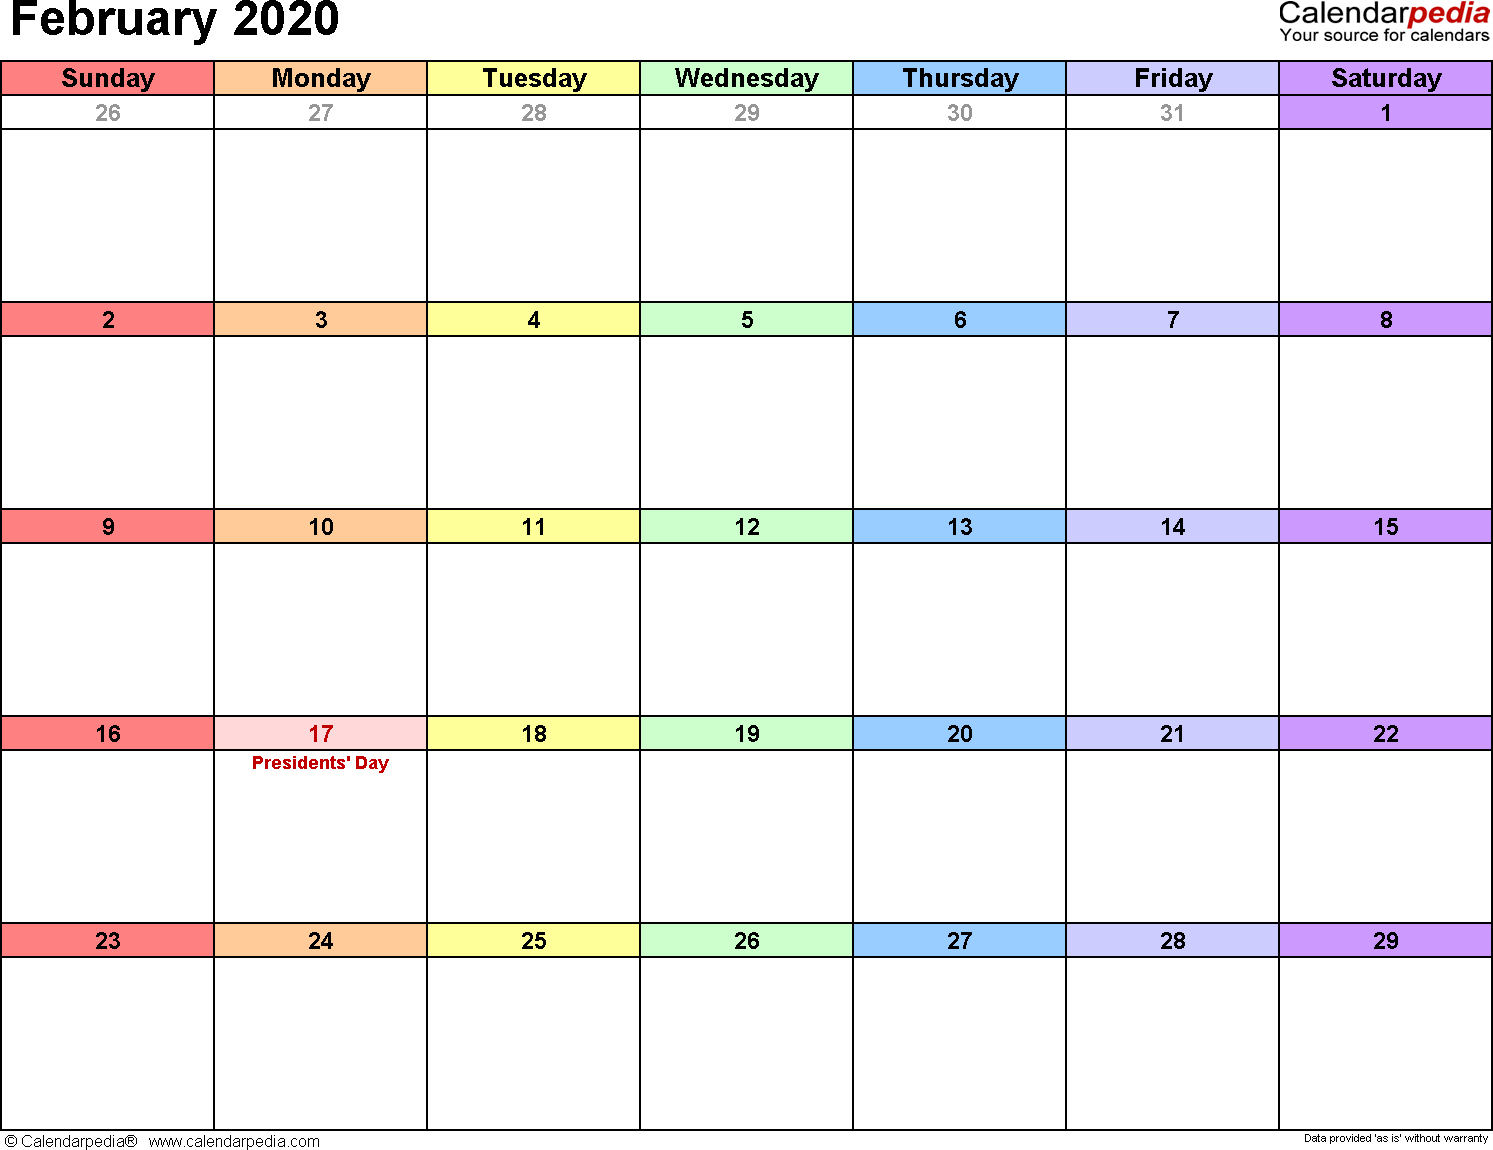 February 2020 Month Calendar February 2020 Calendars for Word, Excel & PDF